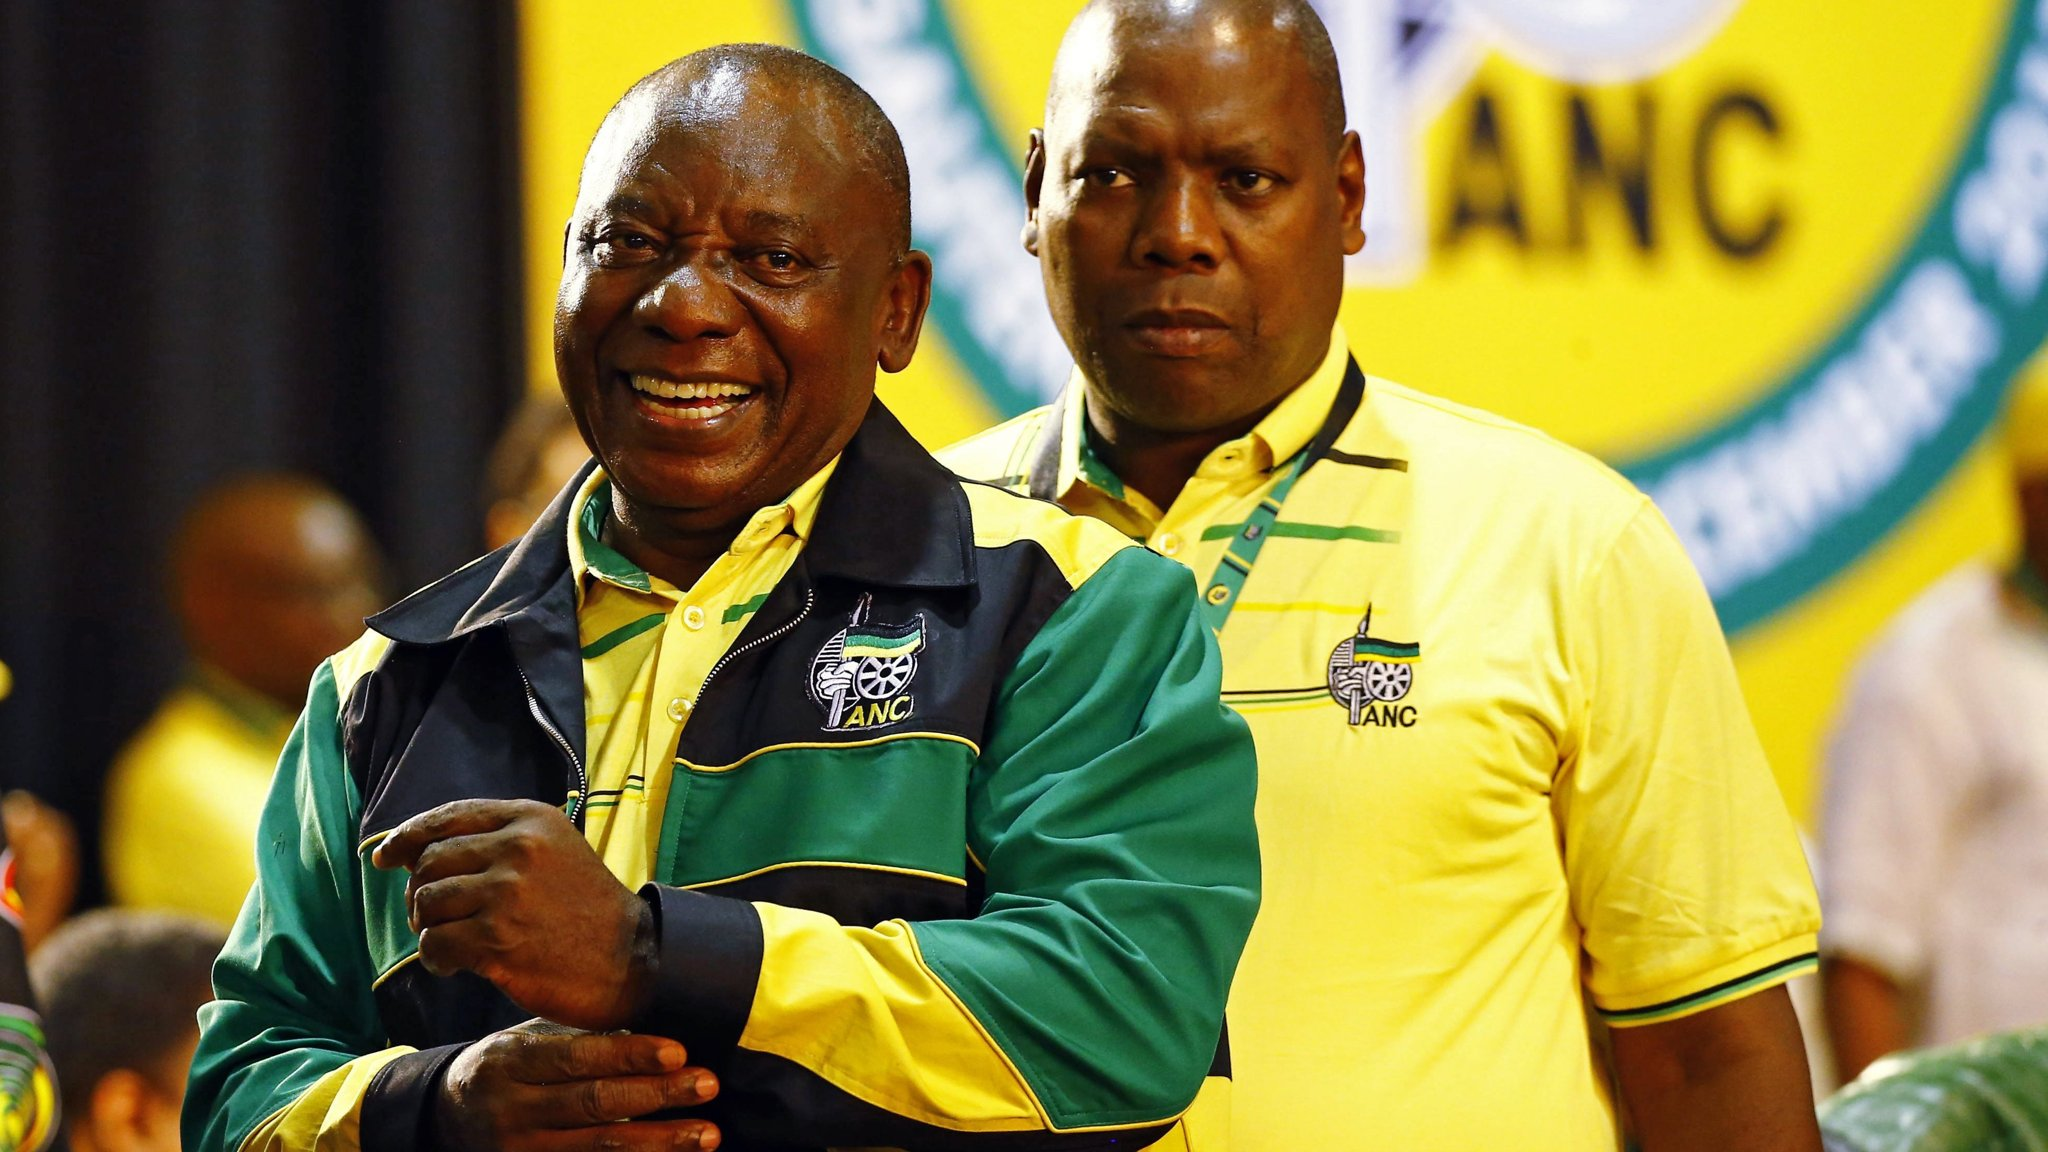 Cyril Ramaphosa finally fulfils his political destiny